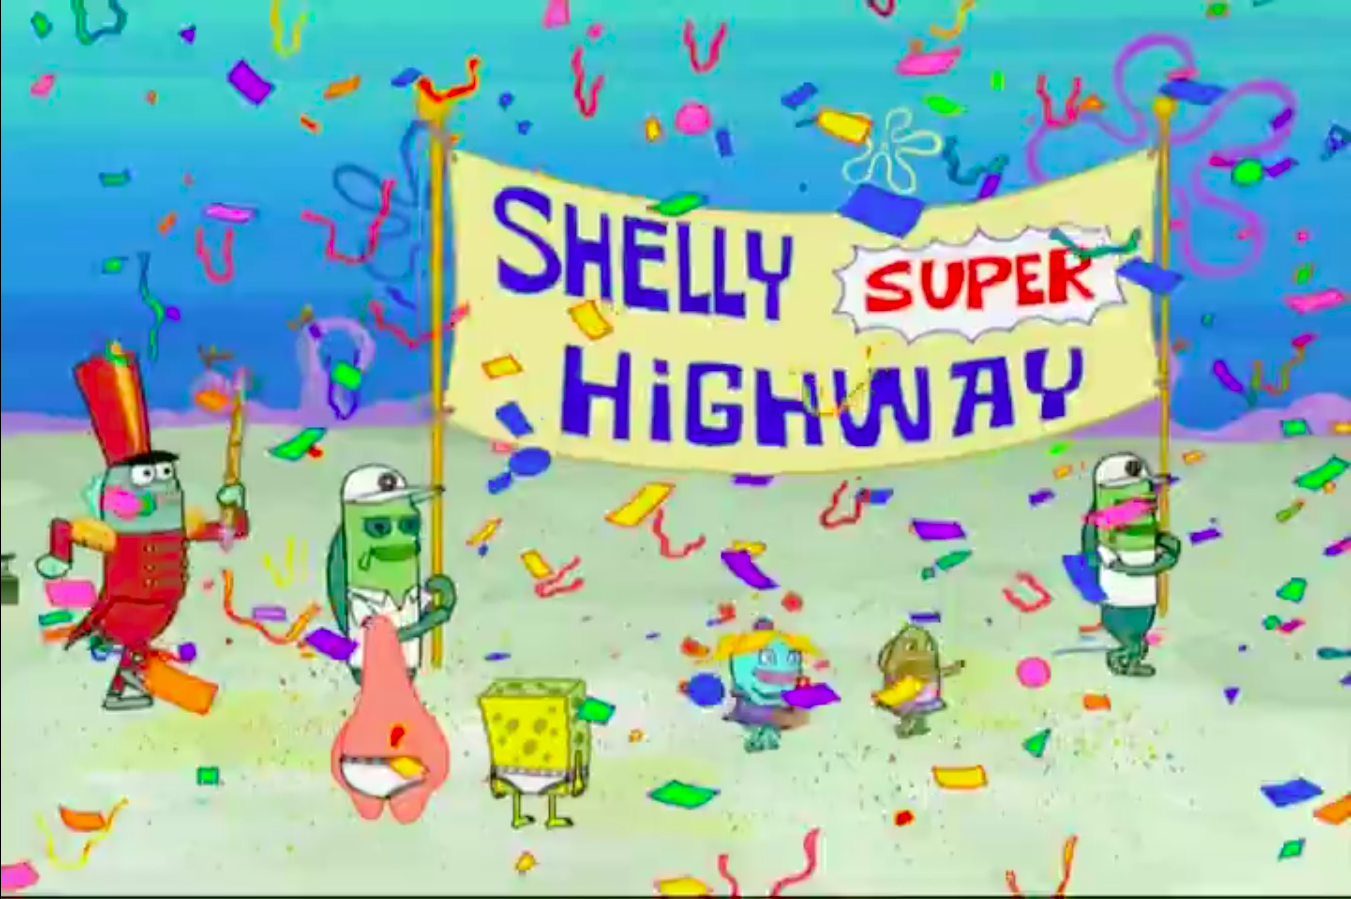 File:Shelly Superhighway Parade.png